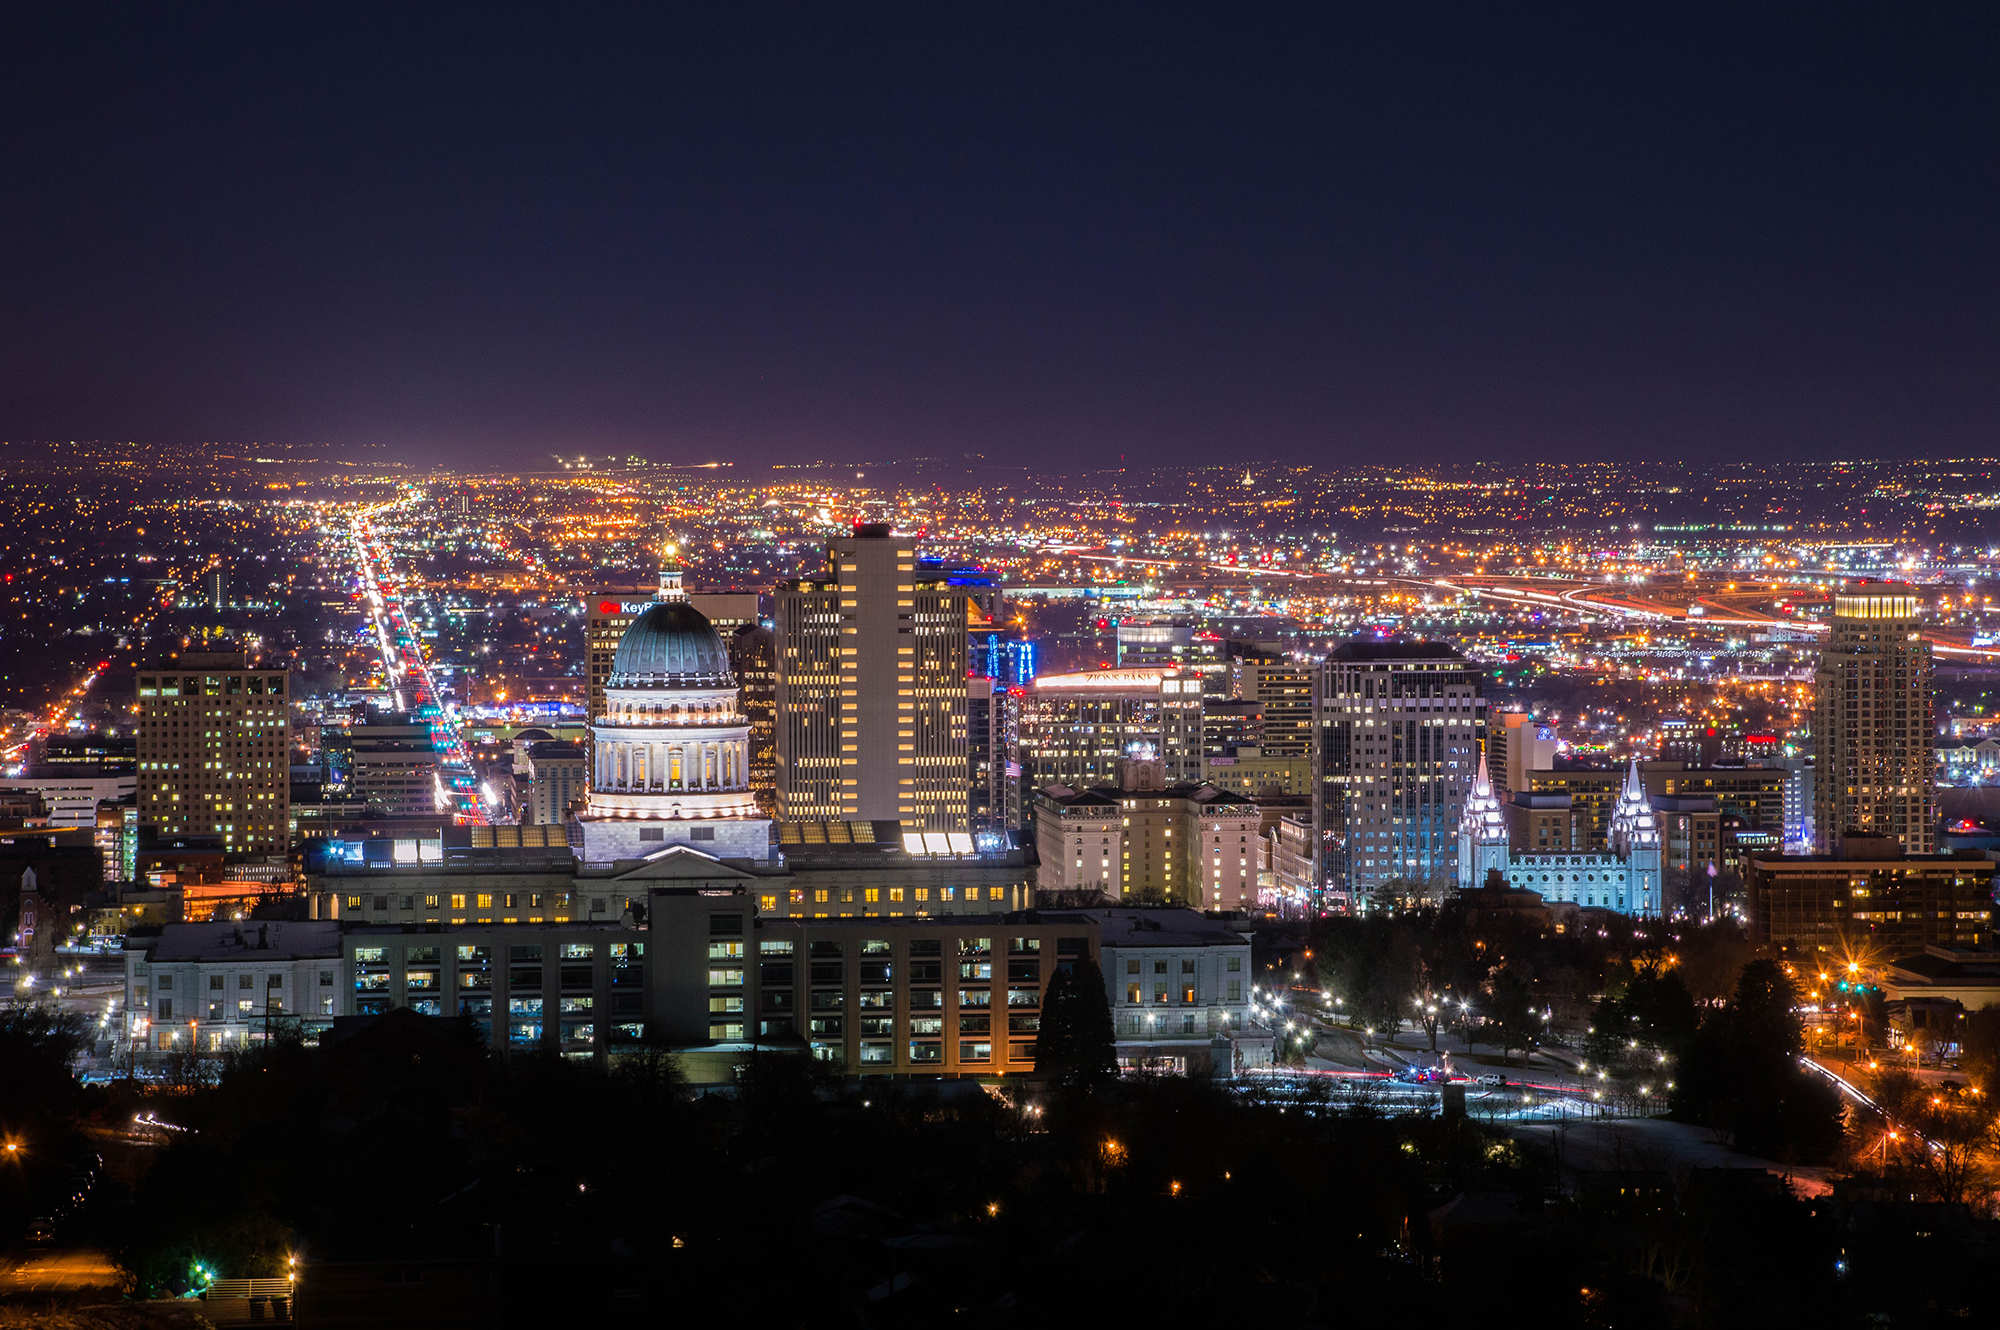 How to Visit Salt Lake City - Things to Do, Lodging | Utah.com